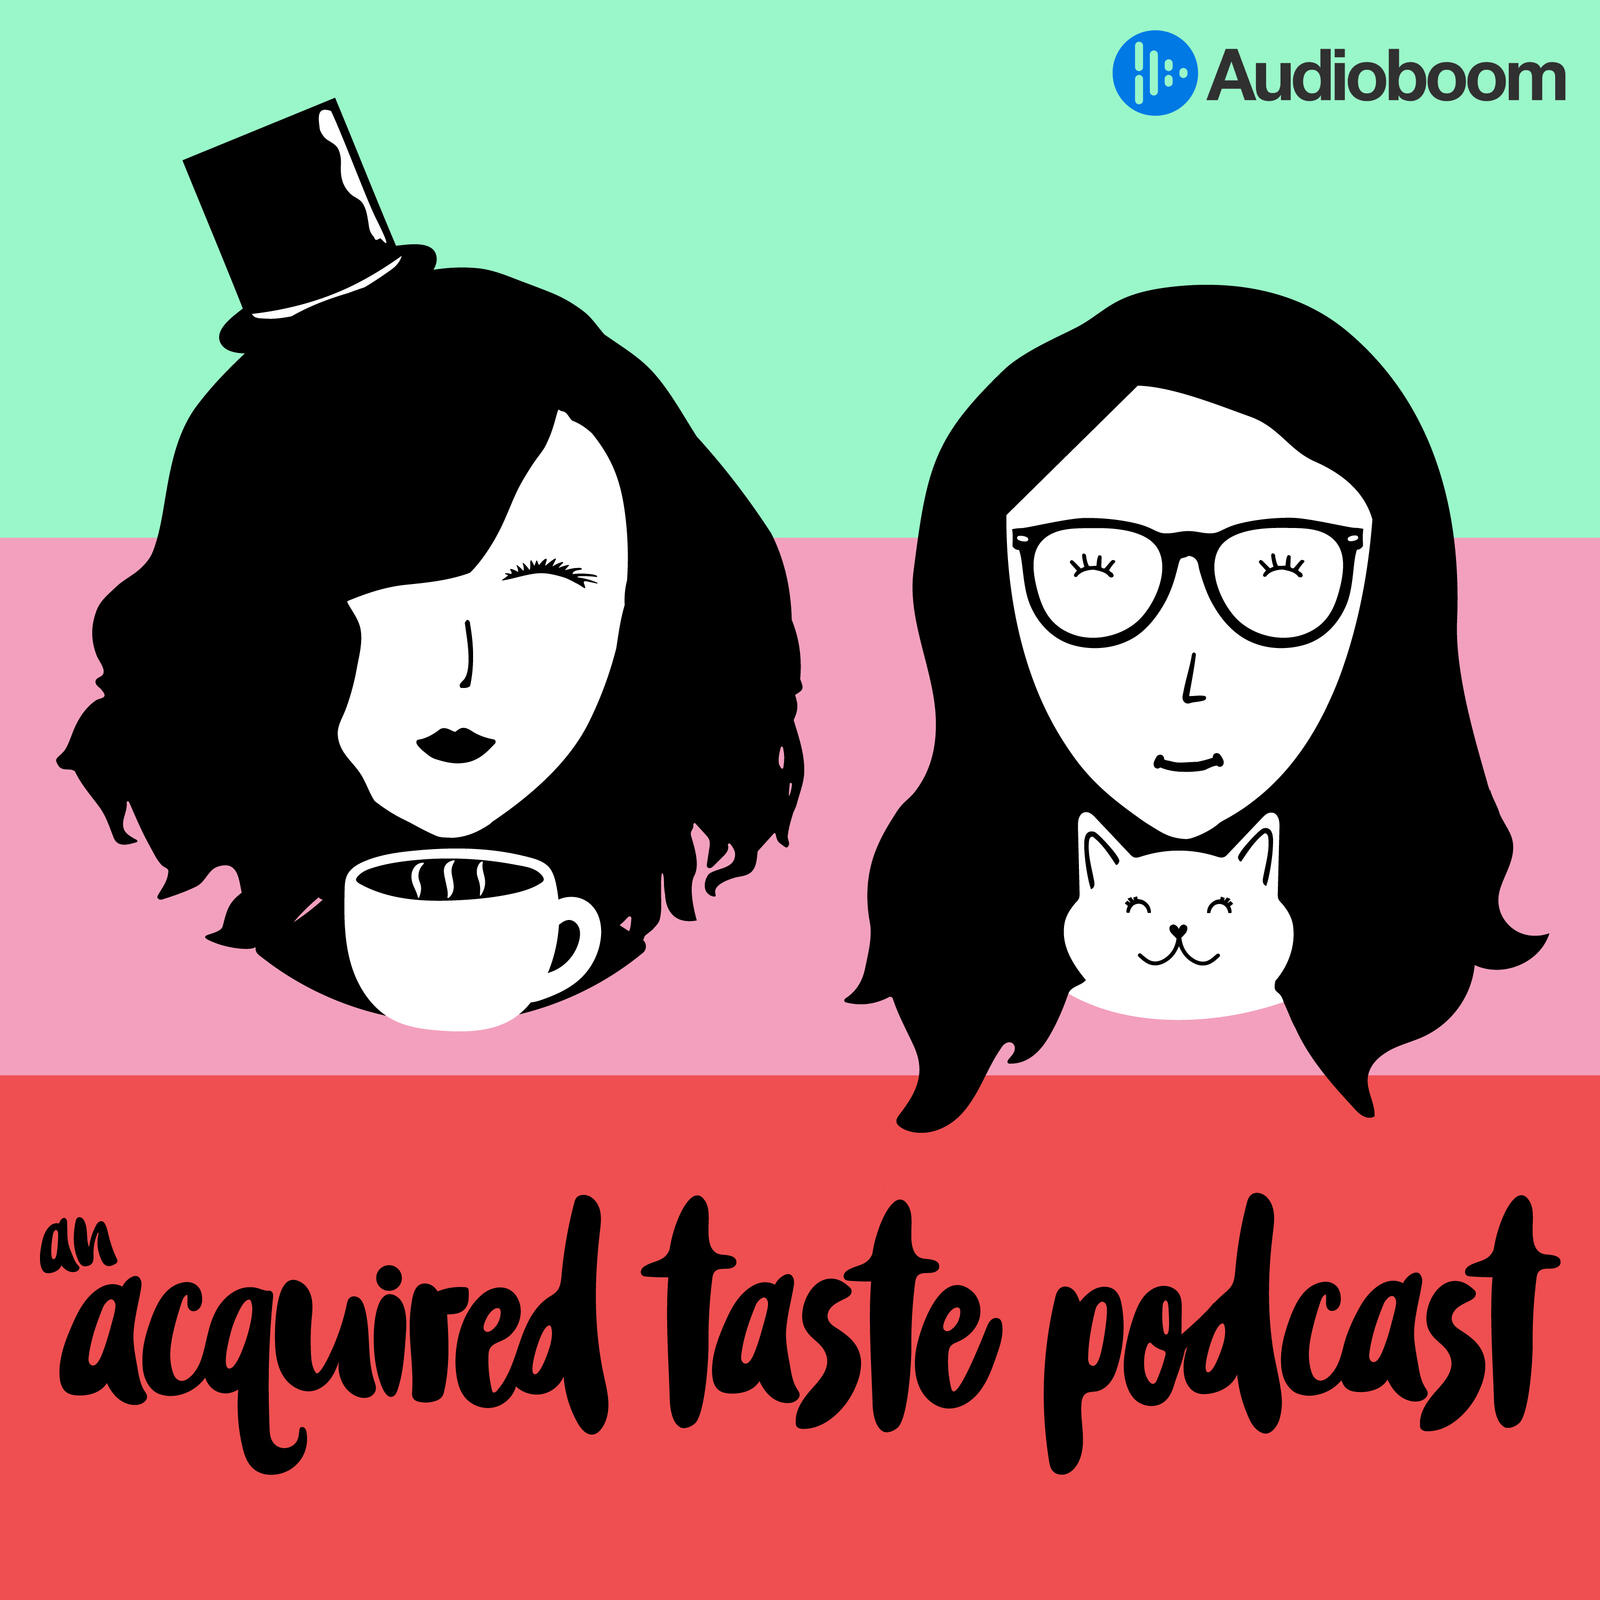 301: Barnes & Noble Bathrooms, Diane Keaton's Cheese Suggestion & Dumb Ways to Die - Bonus